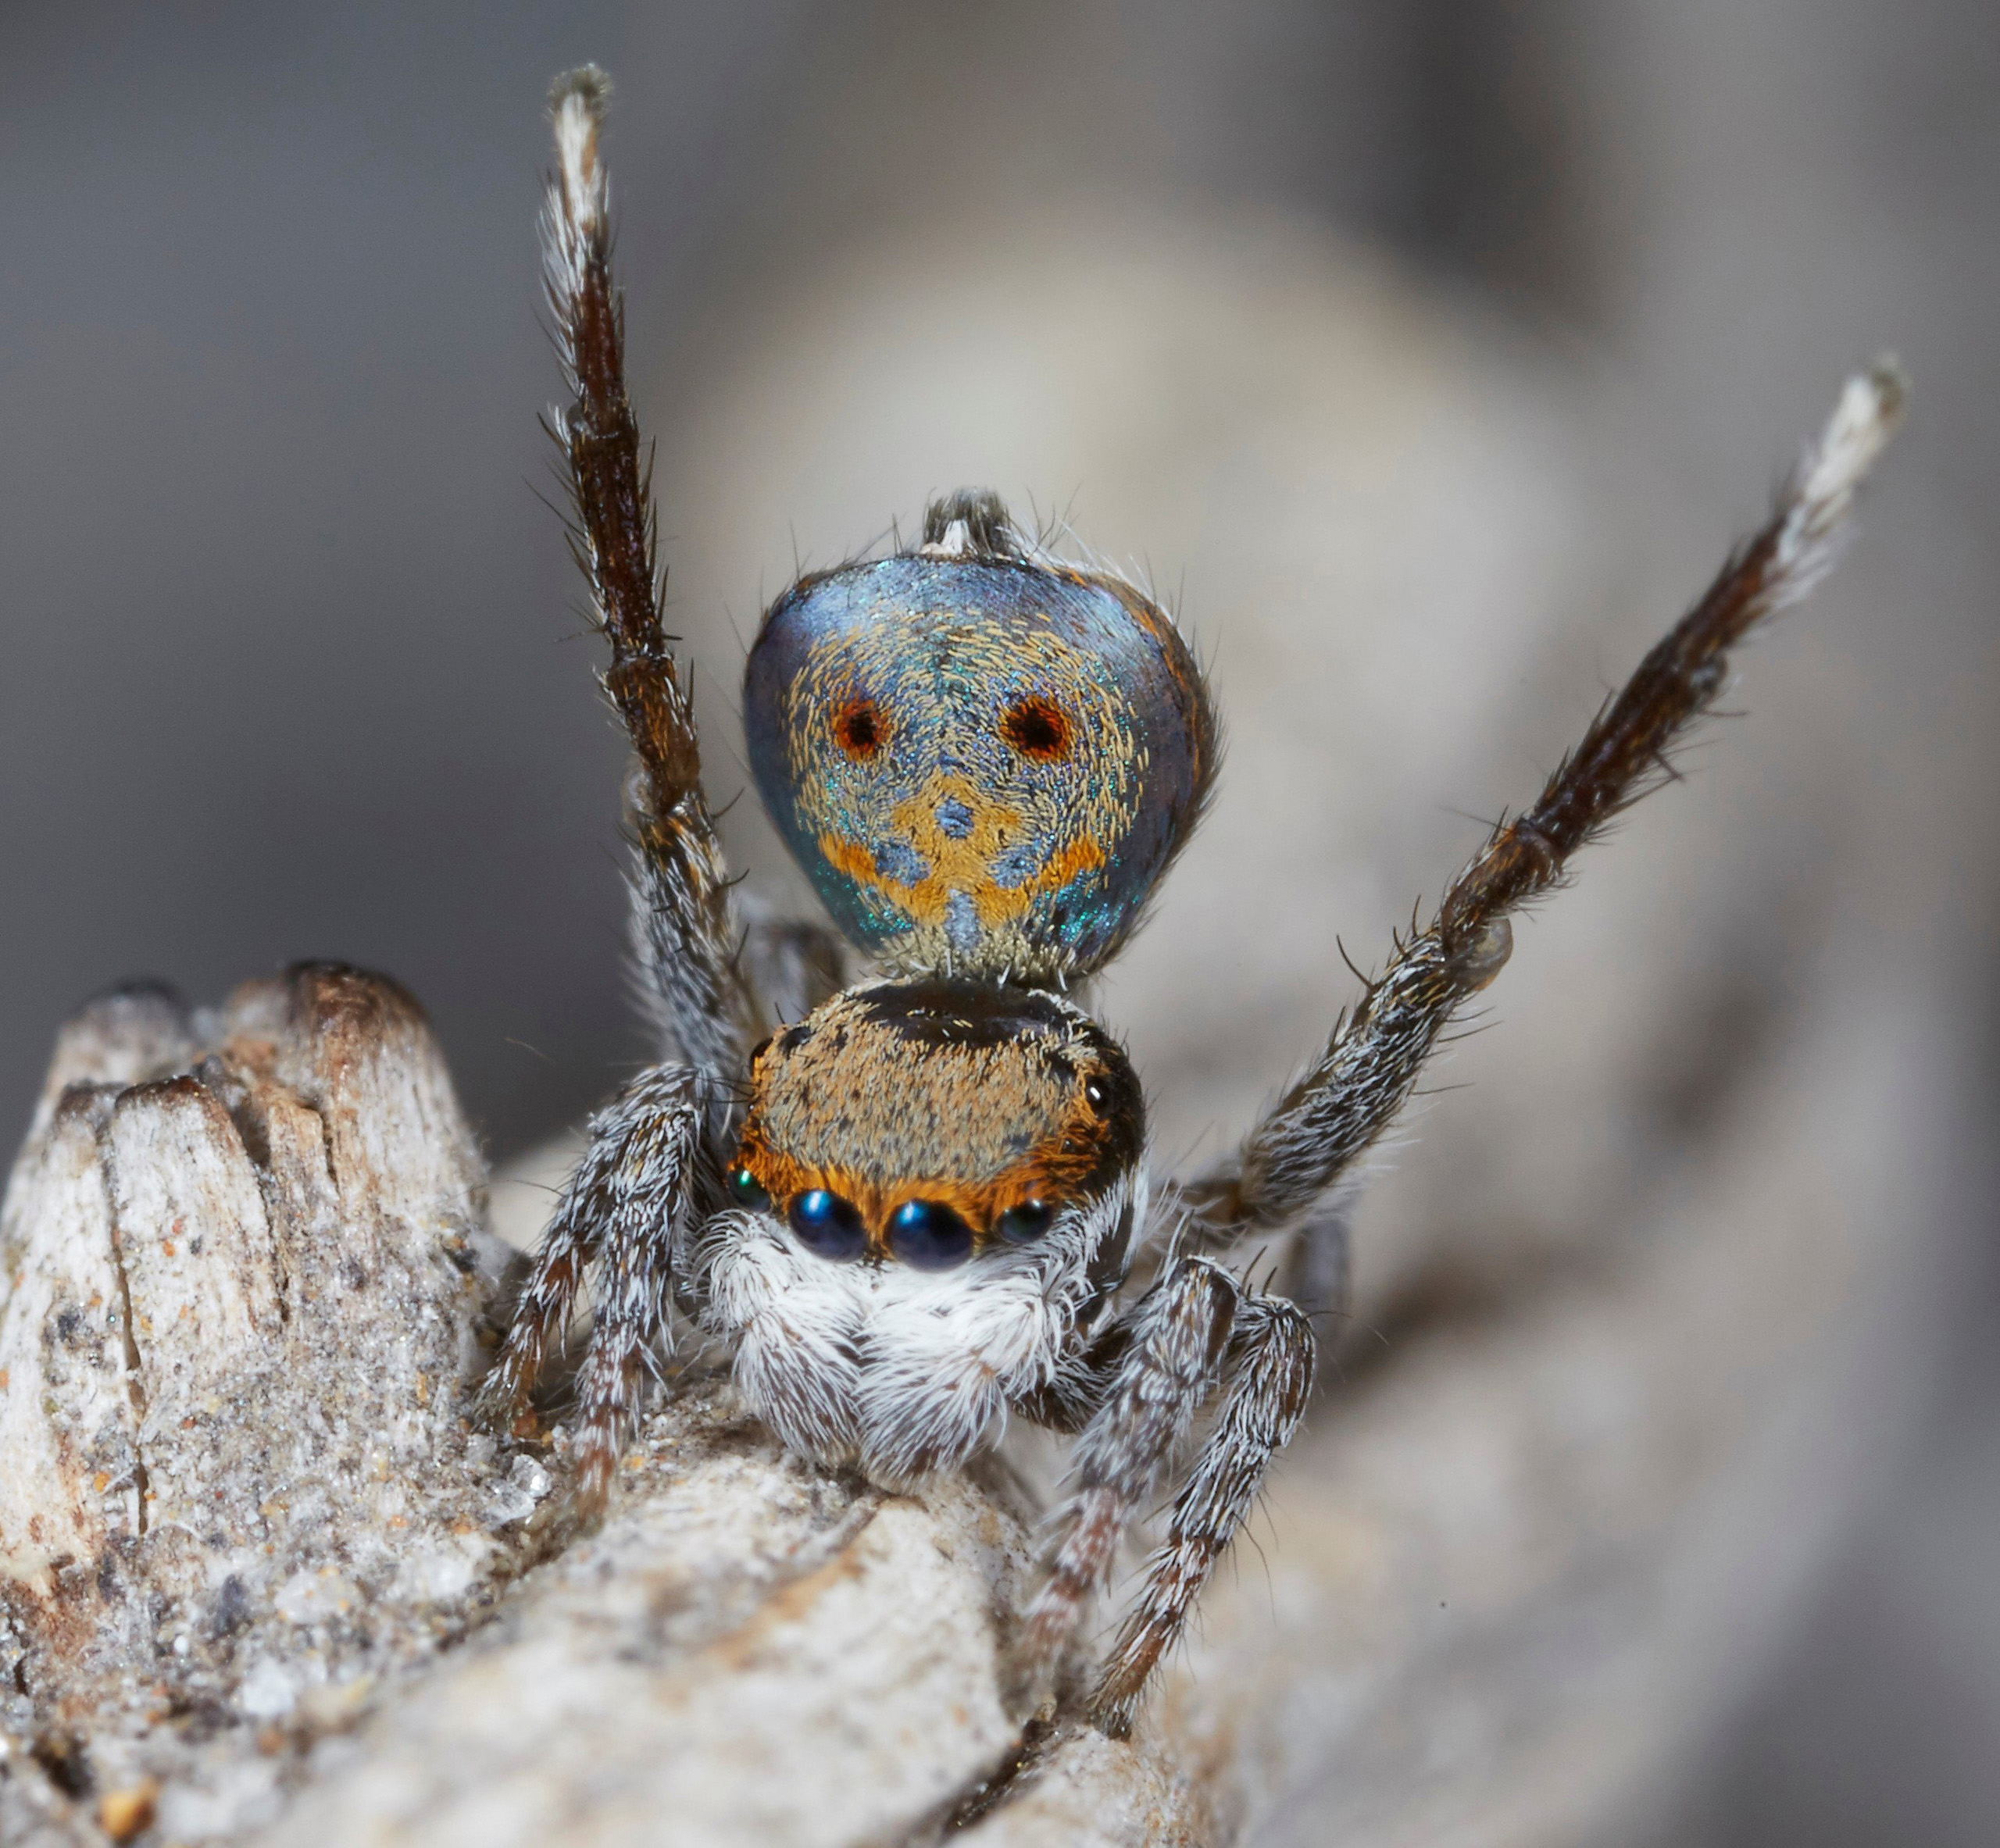 Maratus Vultus shows off its colorful abdomen and waves its legs during a mating display.